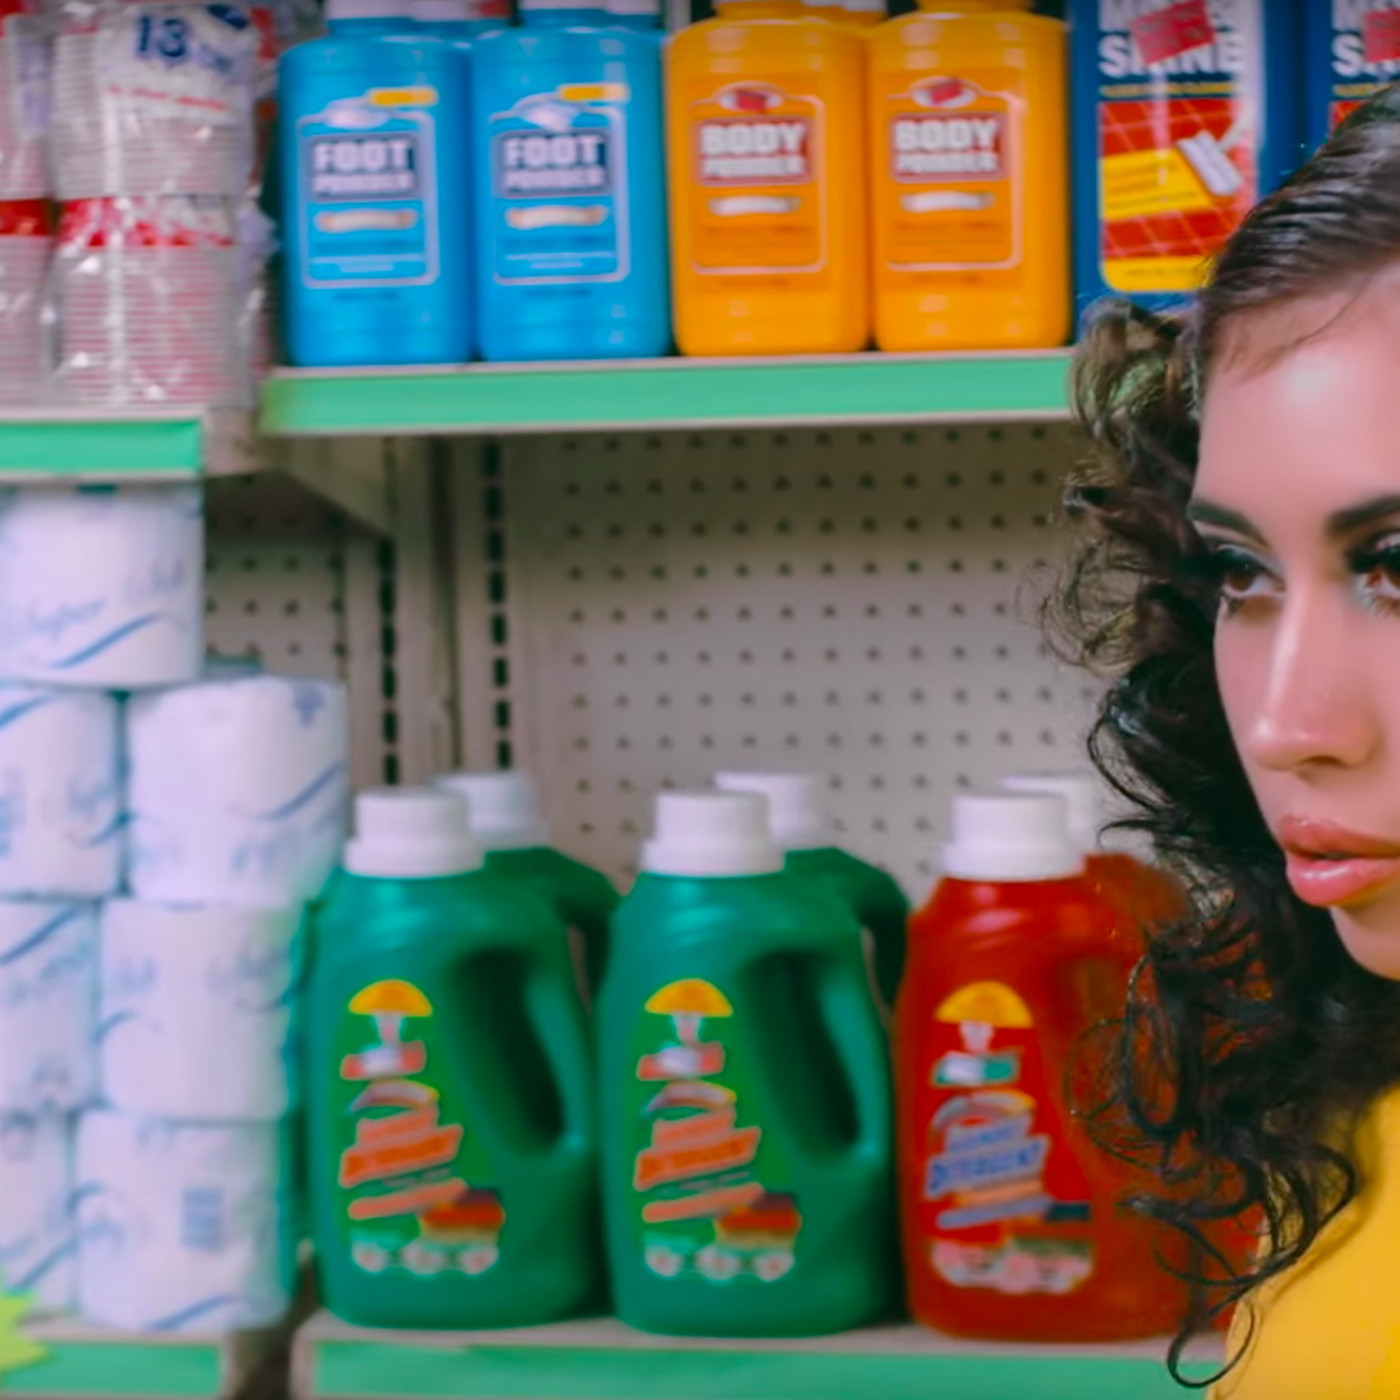 25e22dff1d9d In Kali Uchis  After the Storm video